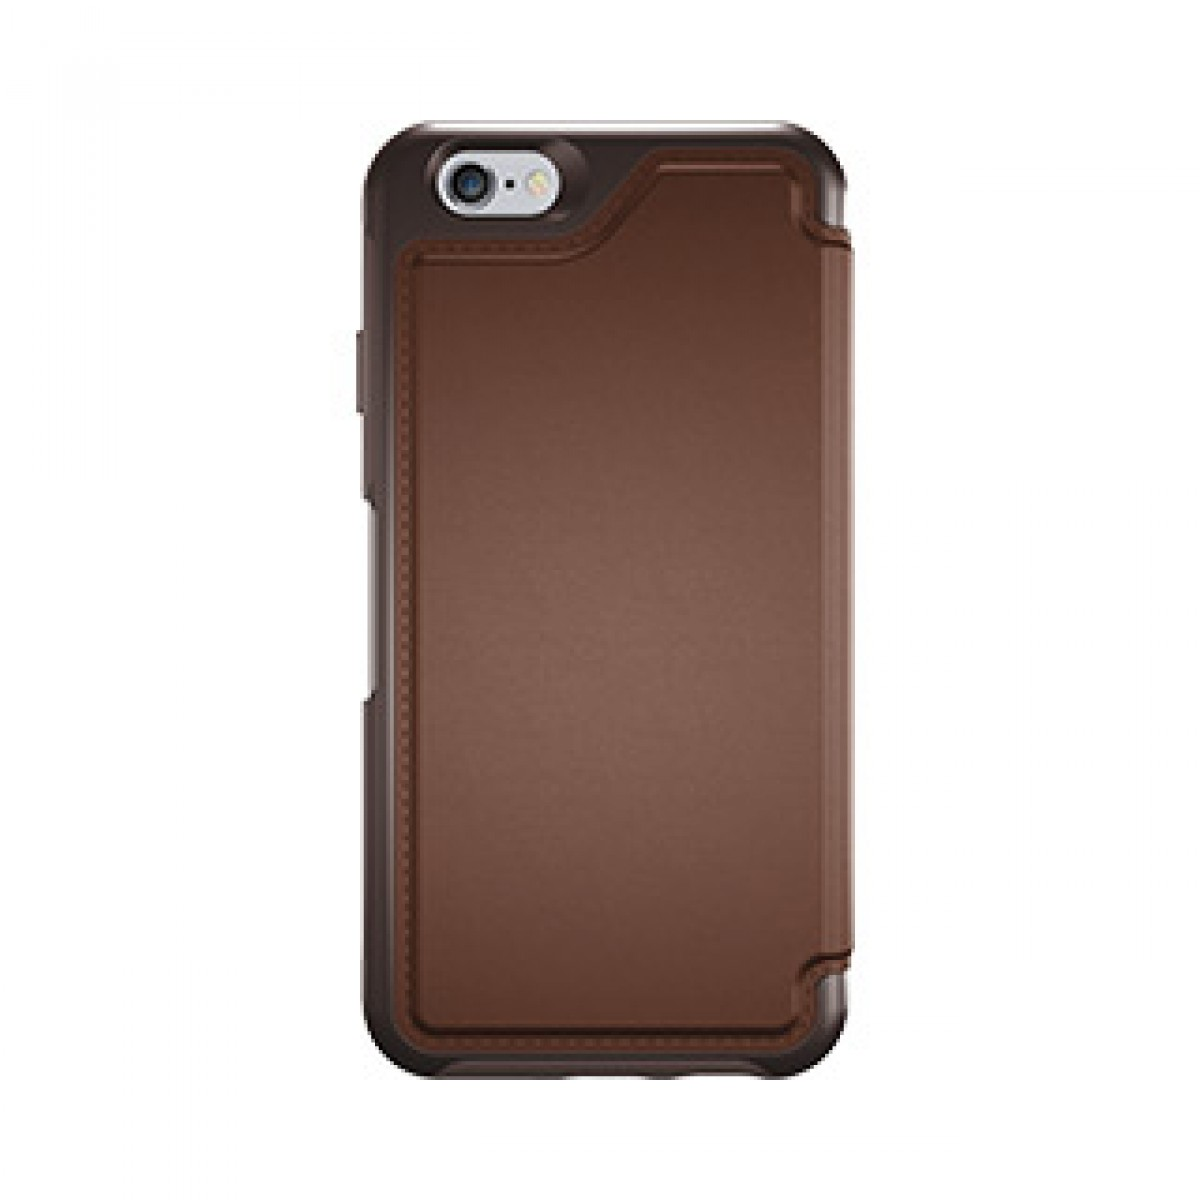 best service 41d04 e2778 iPhone 6/6S Otterbox Brown/Brown (Saddle) Leather Strada Folio